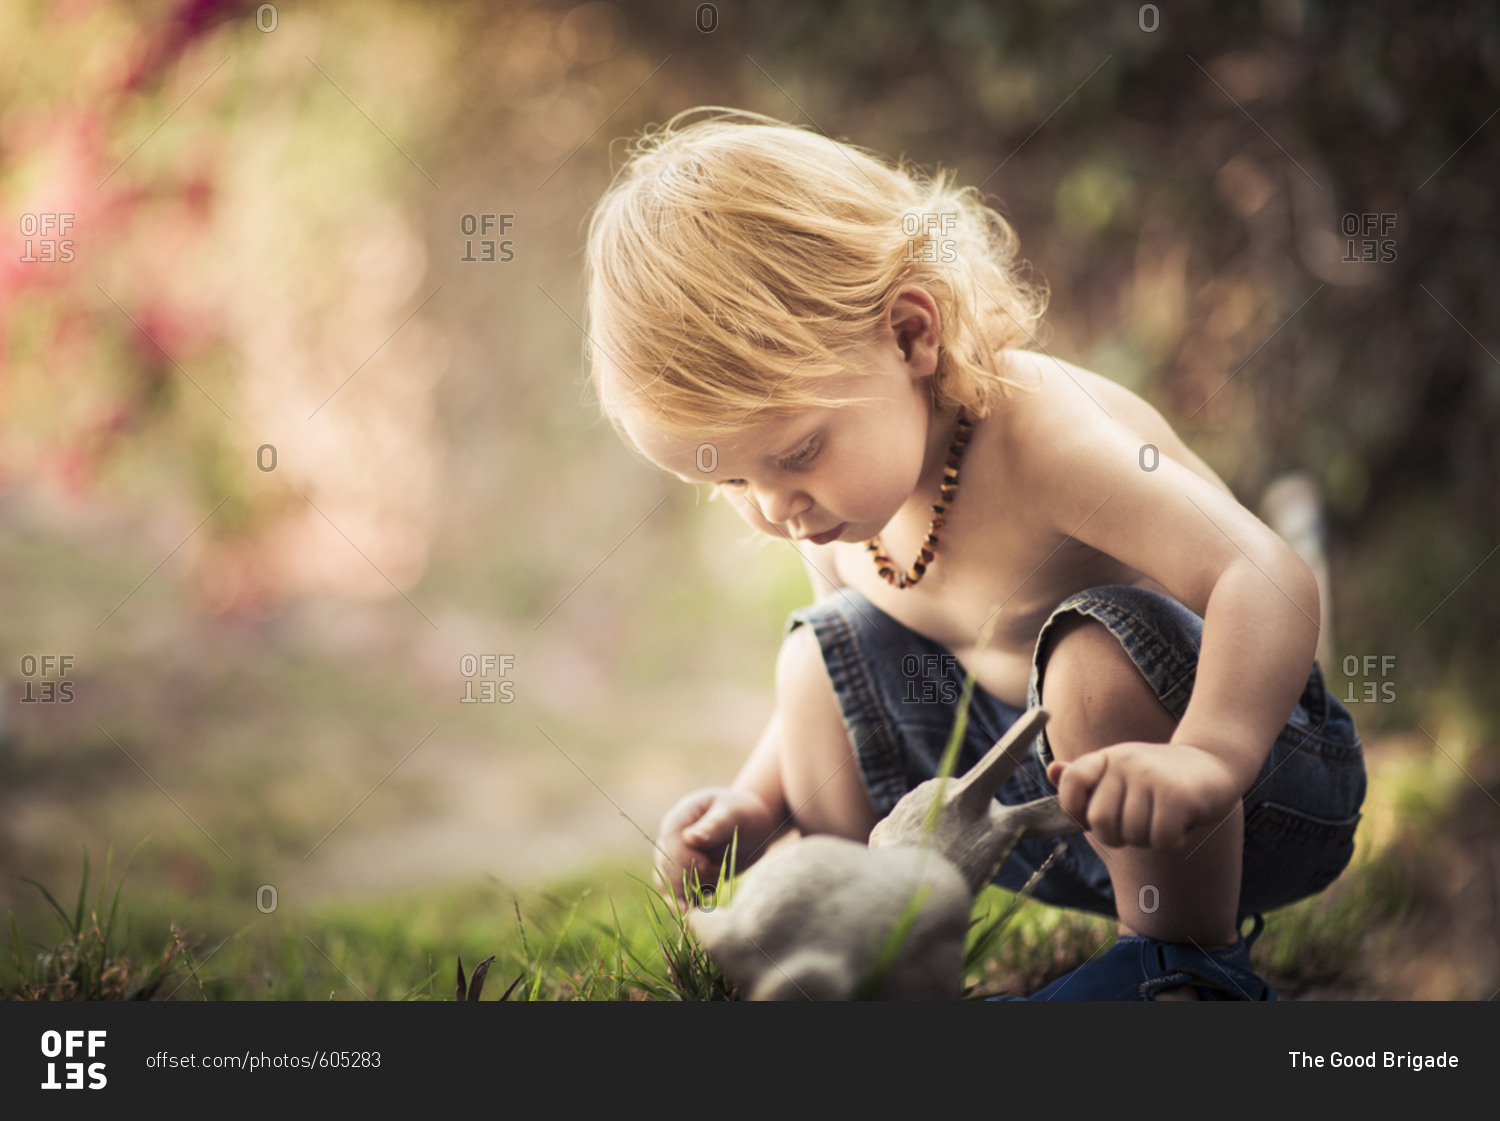 cute shirtless boy crouching while looking at toy rabbit in